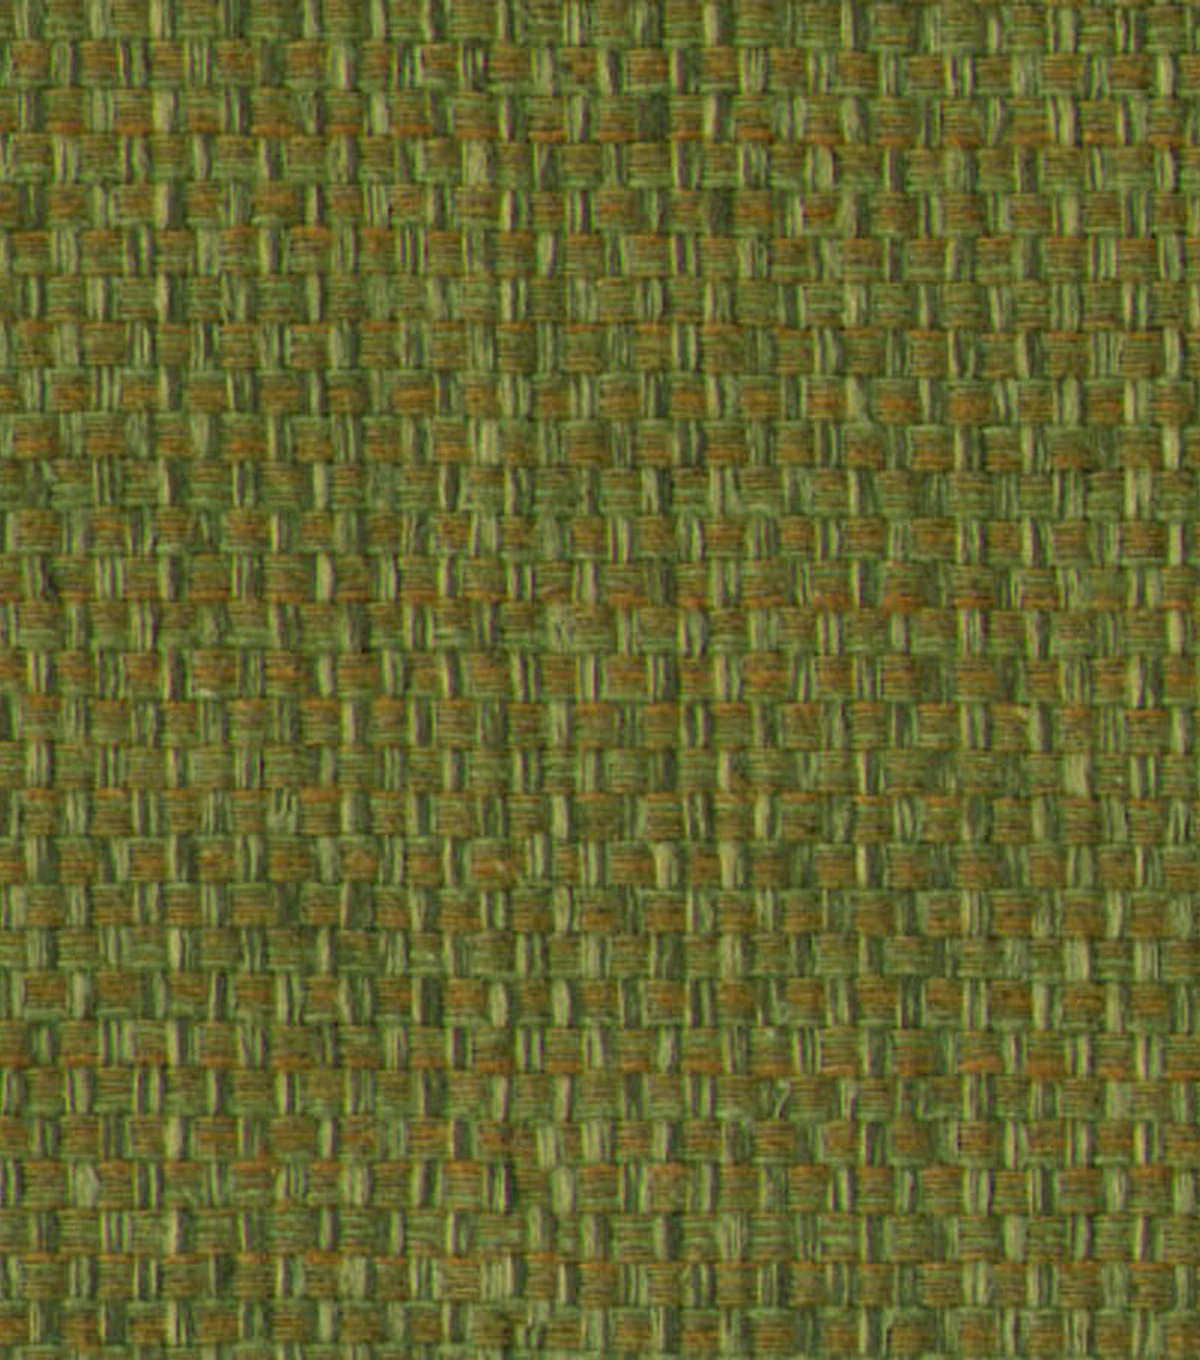 Home Decor 8\u0022x8\u0022 Fabric Swatch-Barrow M6334-5754 Seagrass